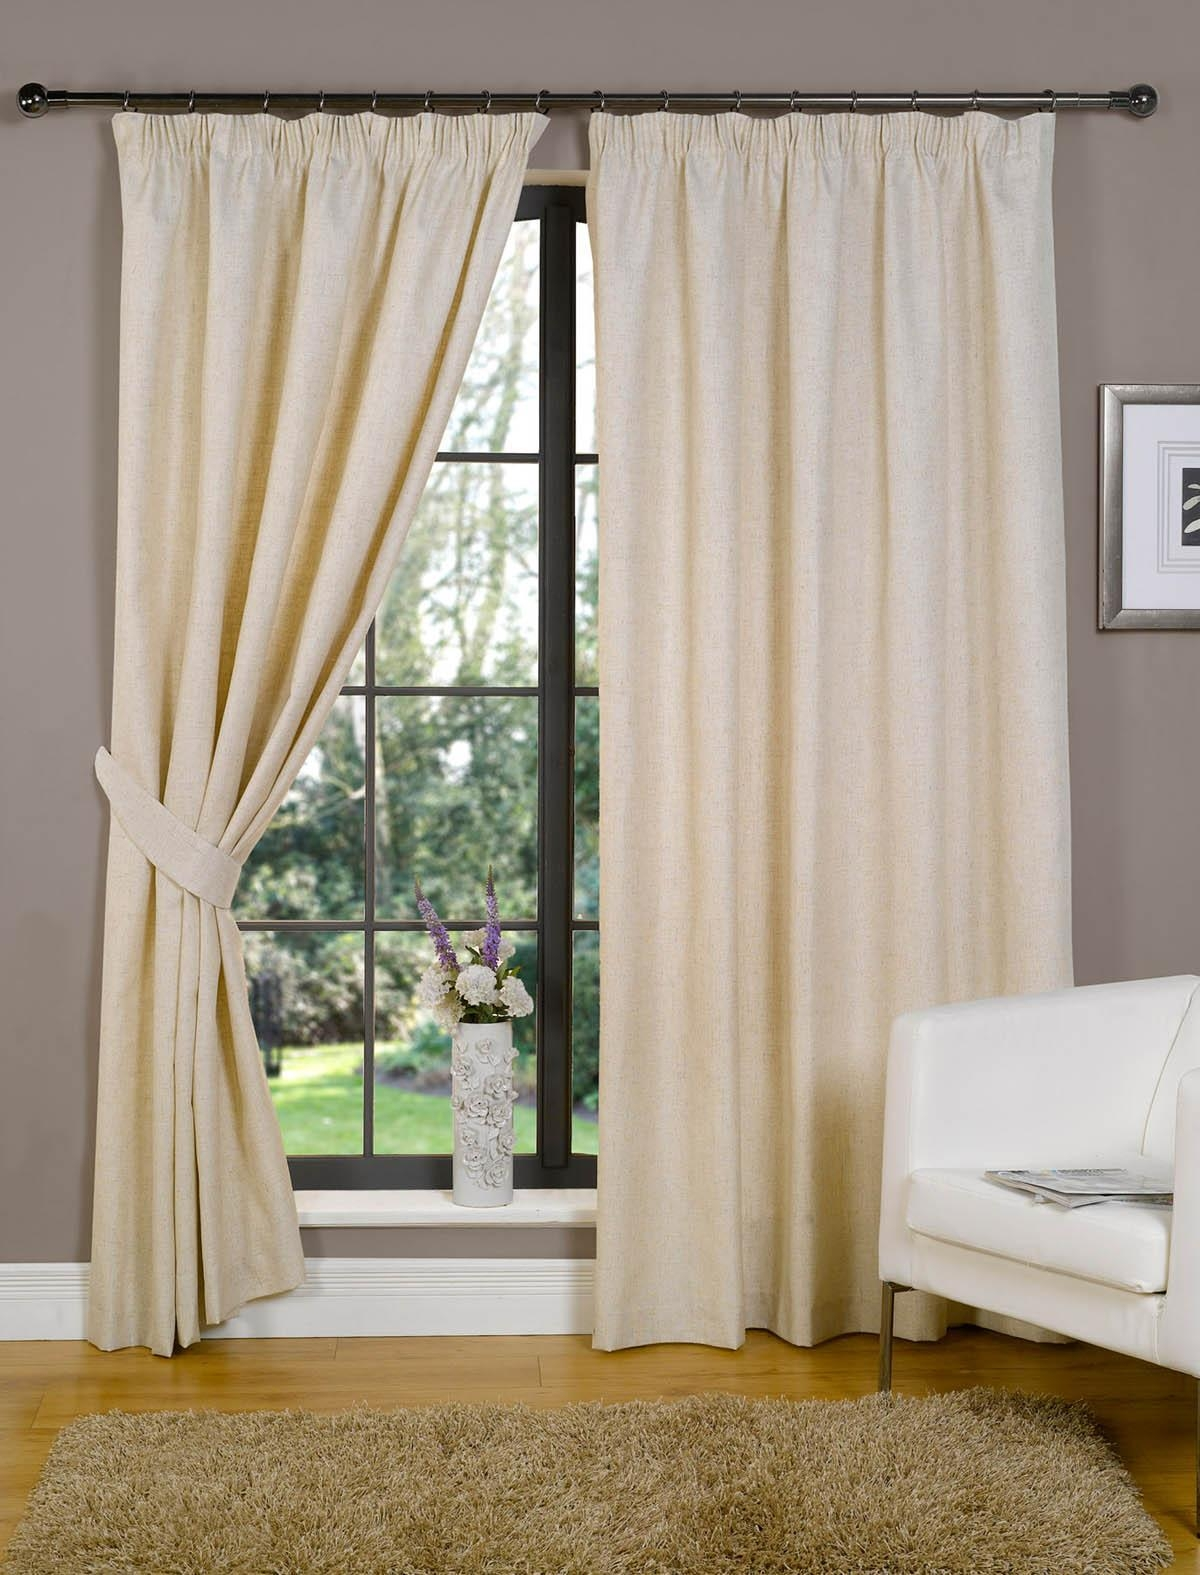 Linen Luxury Curtains With Regard To Linen Luxury Curtains (Image 6 of 15)